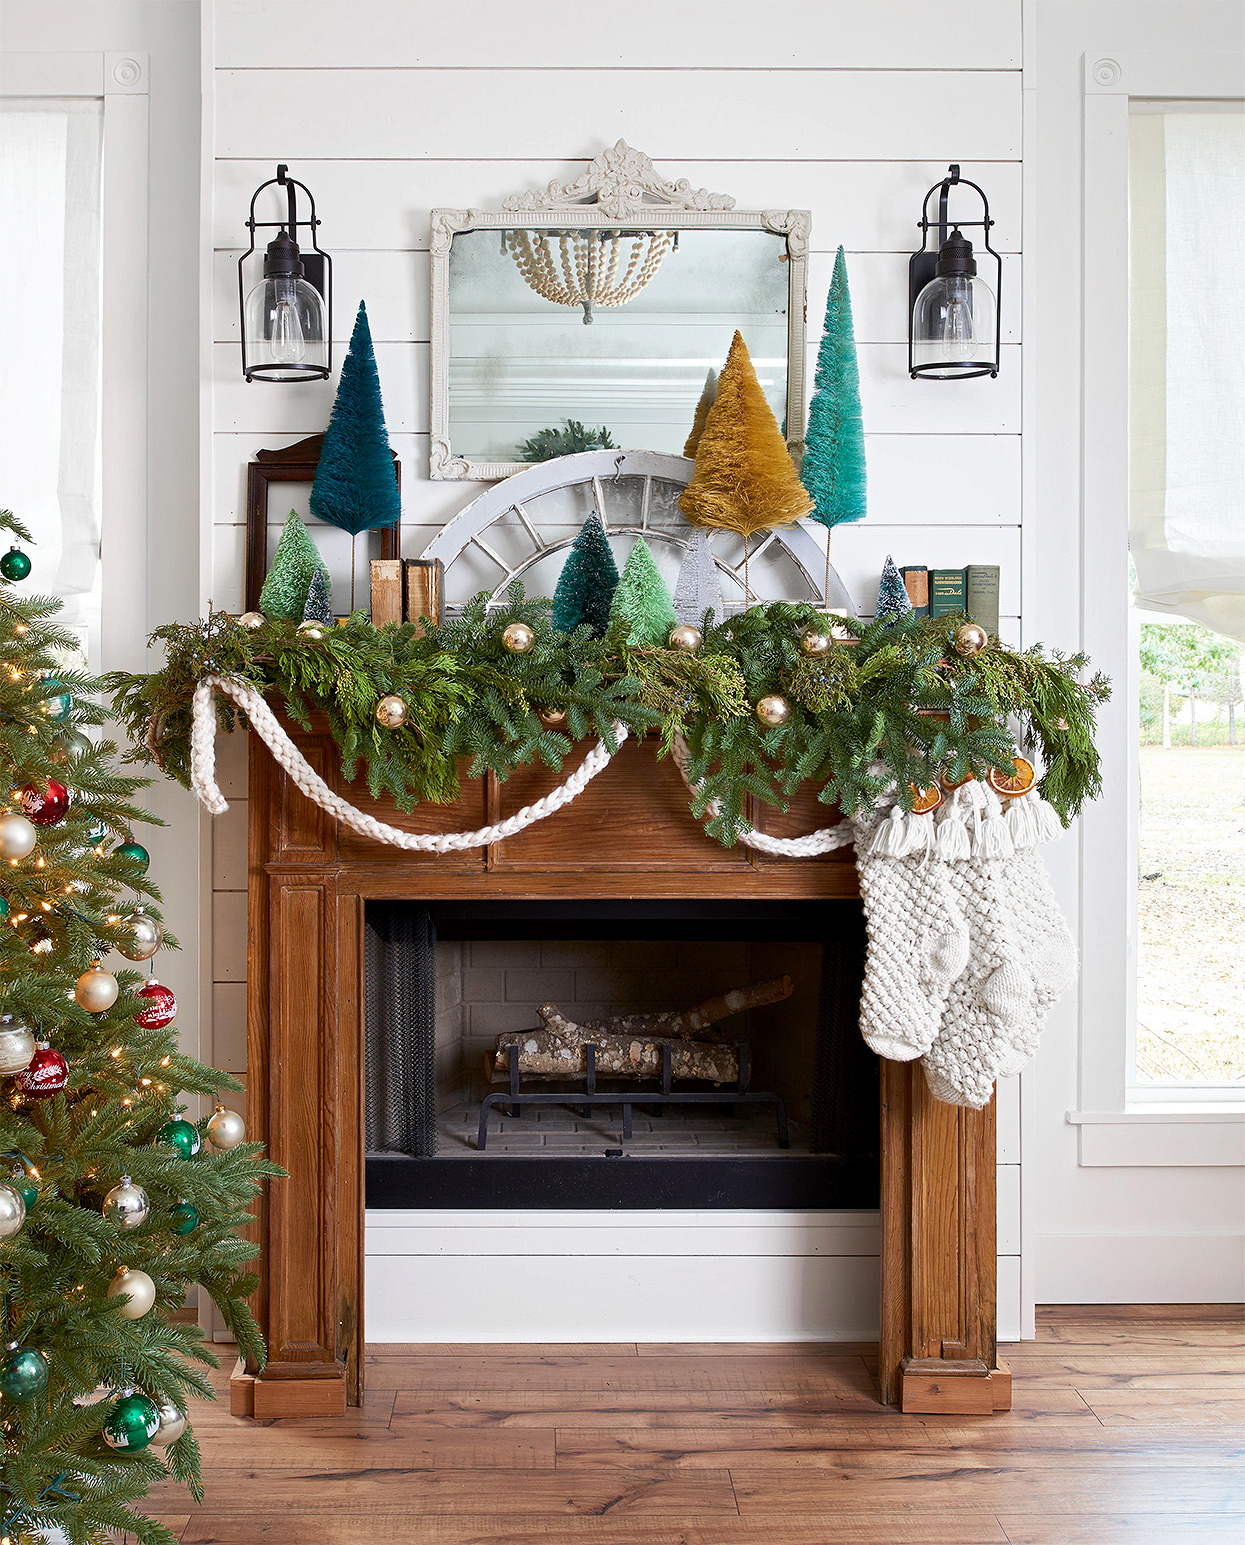 garland-covered mantel with knit Christmas stockings and trees